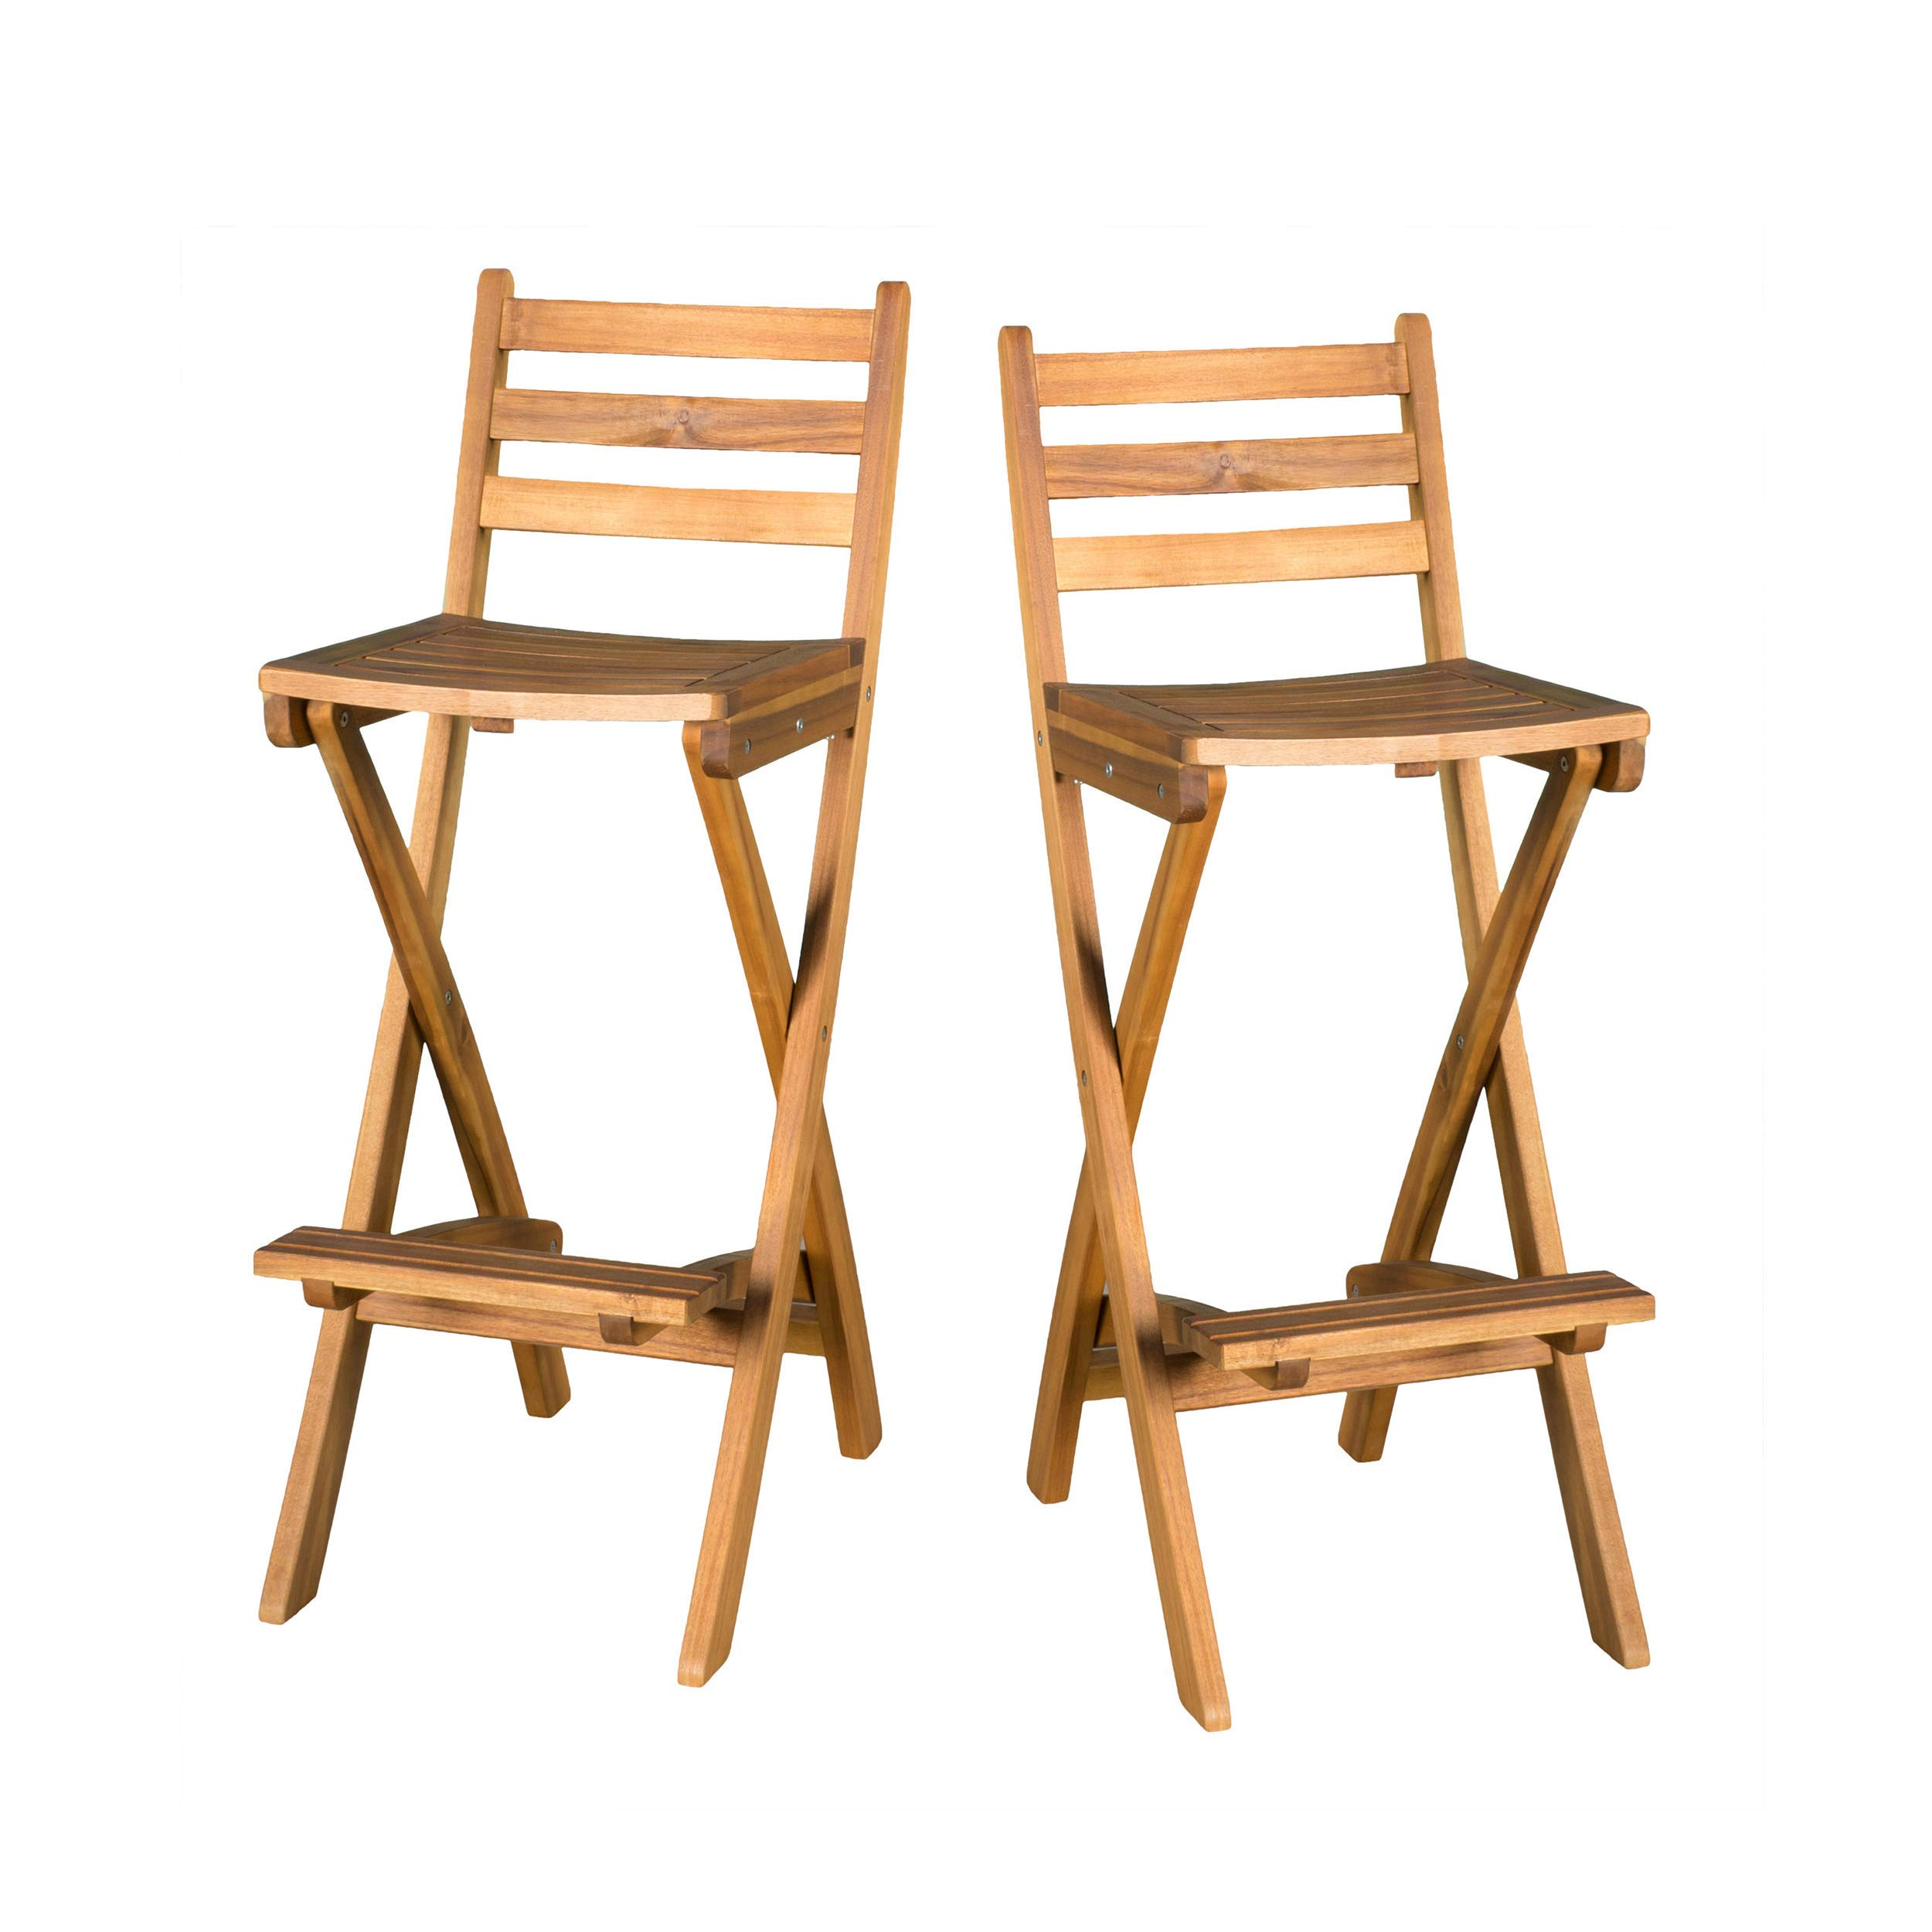 Christopher Knight Home 295797 Atlantic Outdoor Folding Wood Bar Stools by NFusion